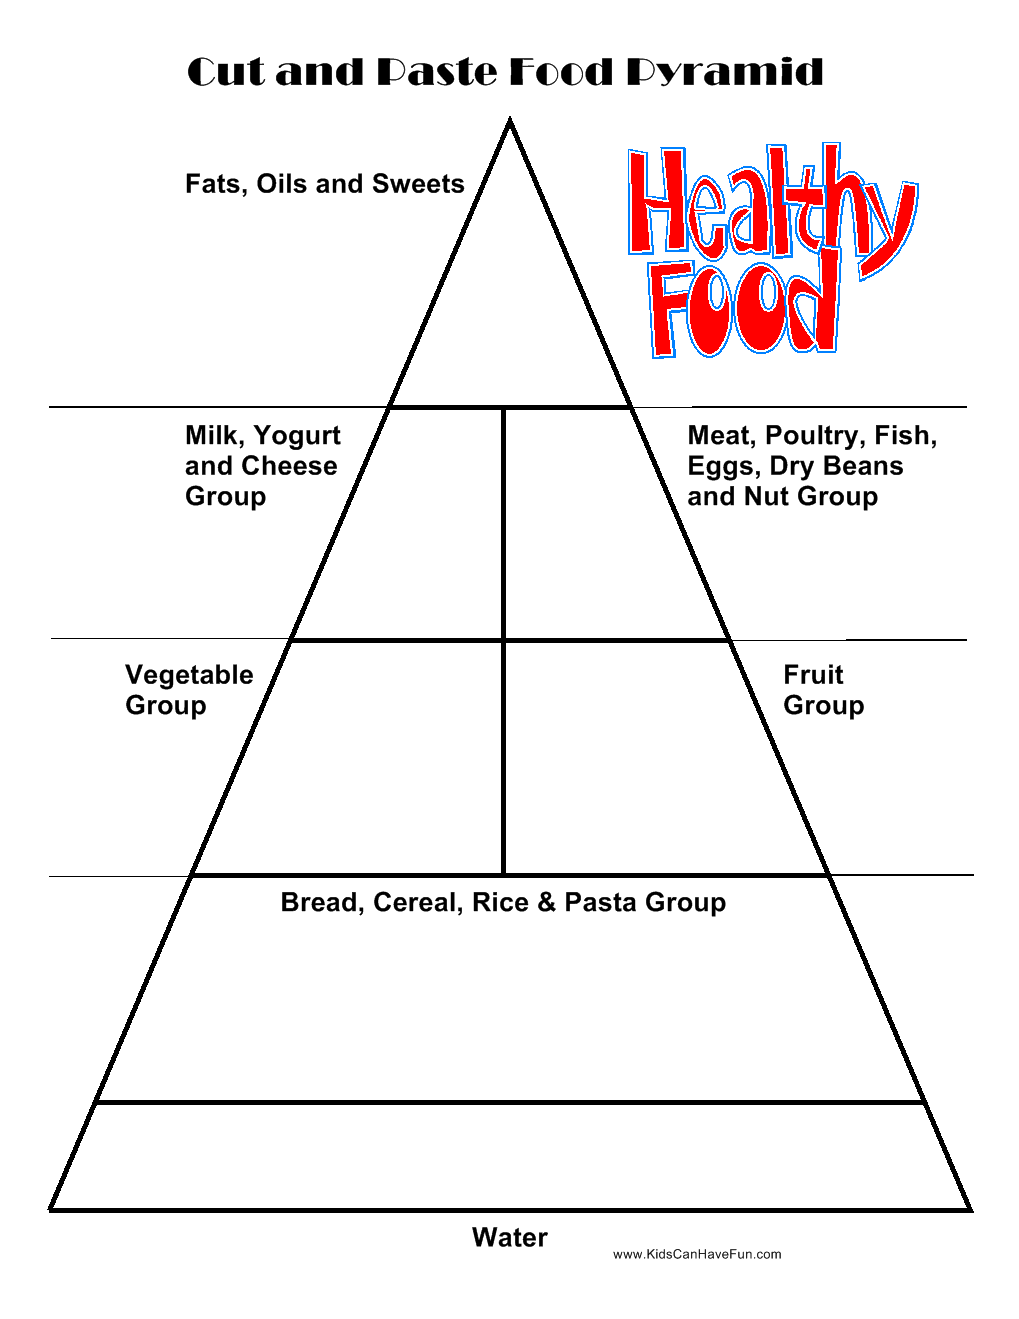 Cut and Paste Food Pyramid Kids cut out food choices and paste